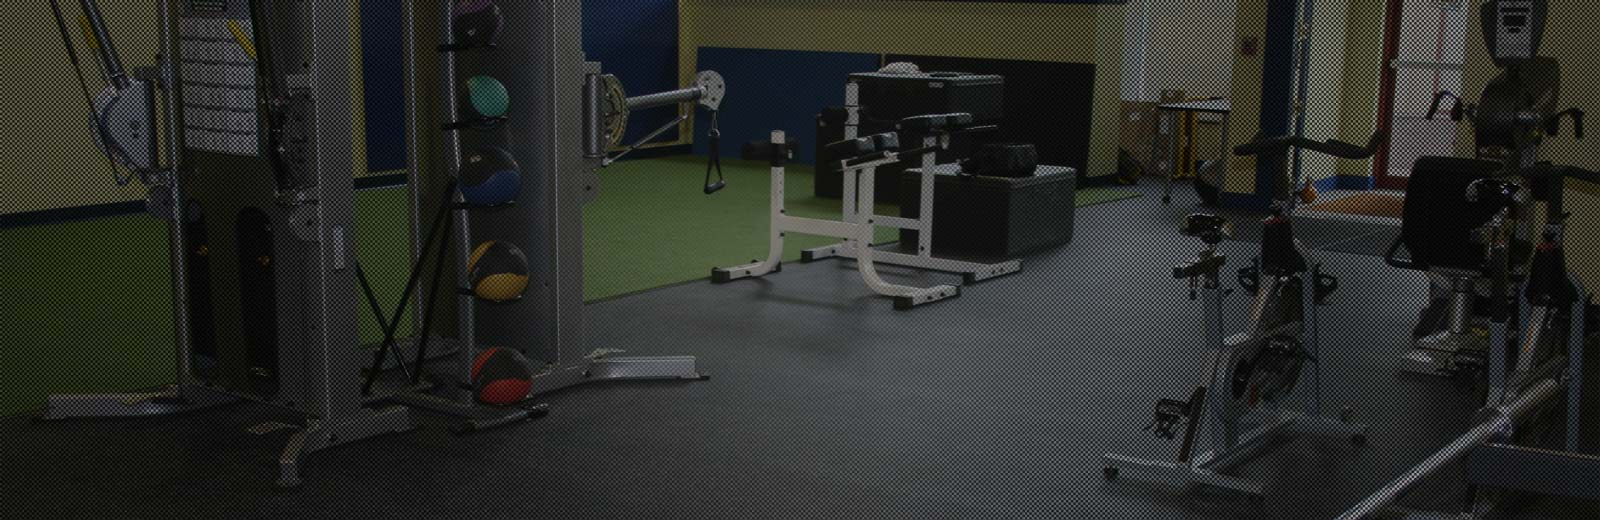 Indoor Turf & Rubber Flooring for Gyms